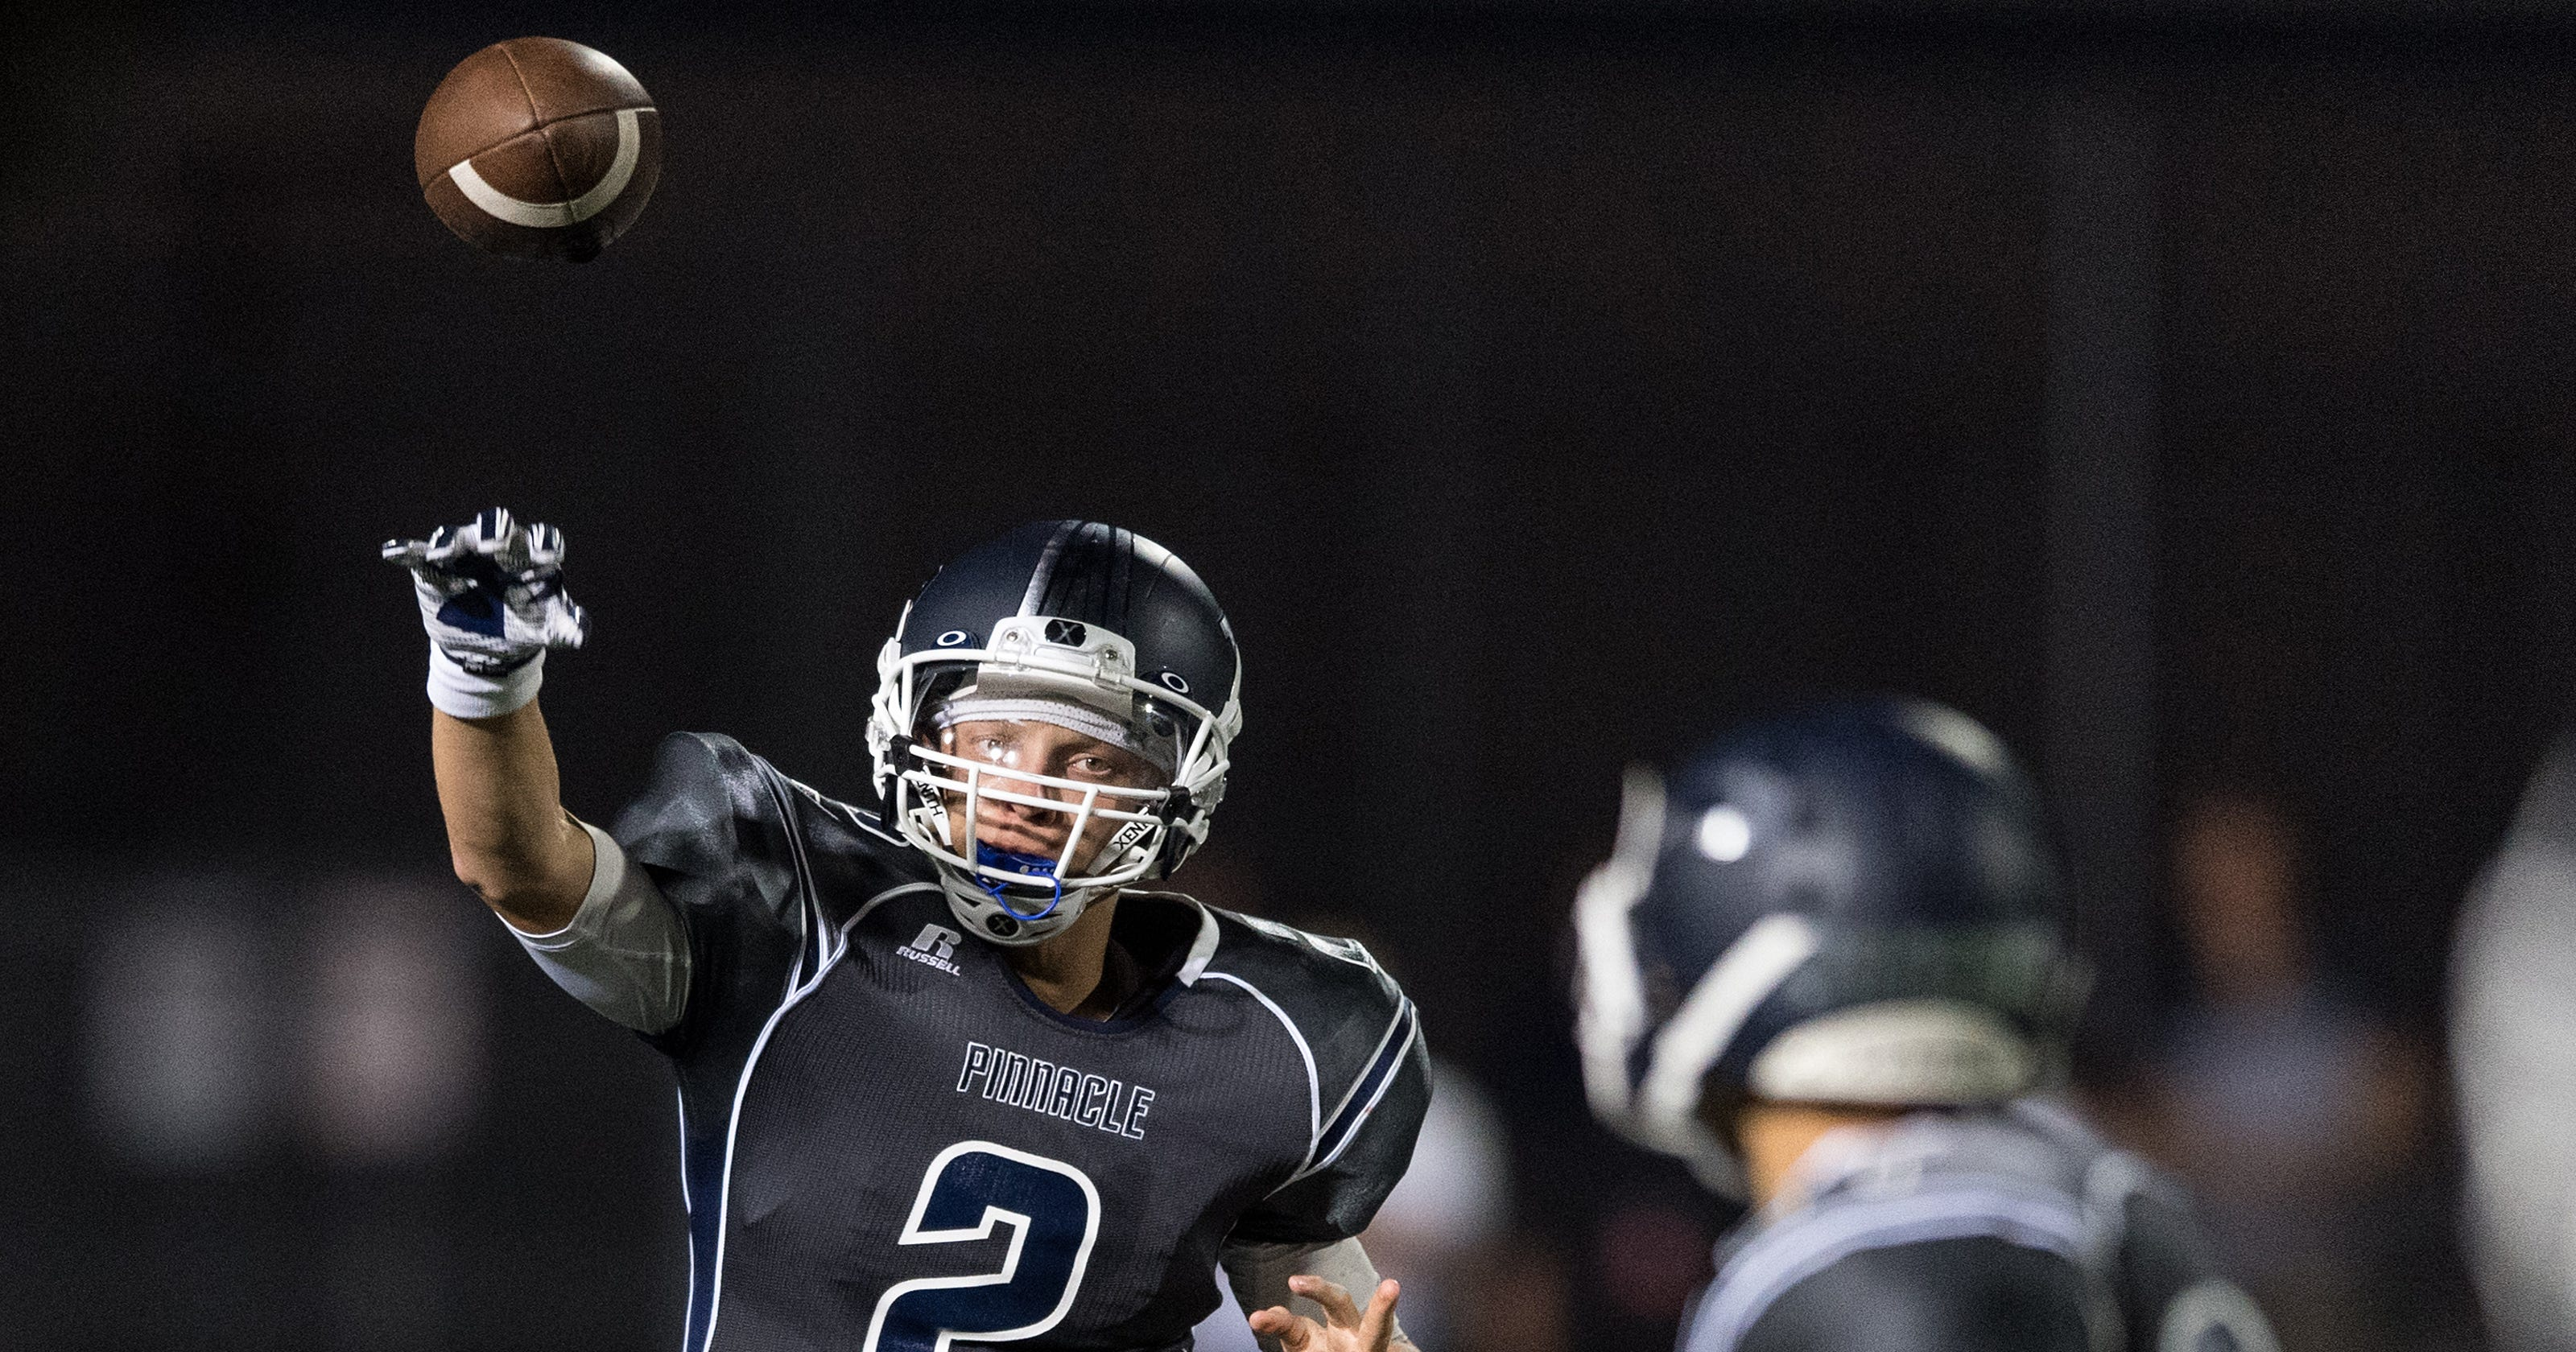 b136f42f20c Pinnacle QB Spencer Rattler receives highest possible star ranking